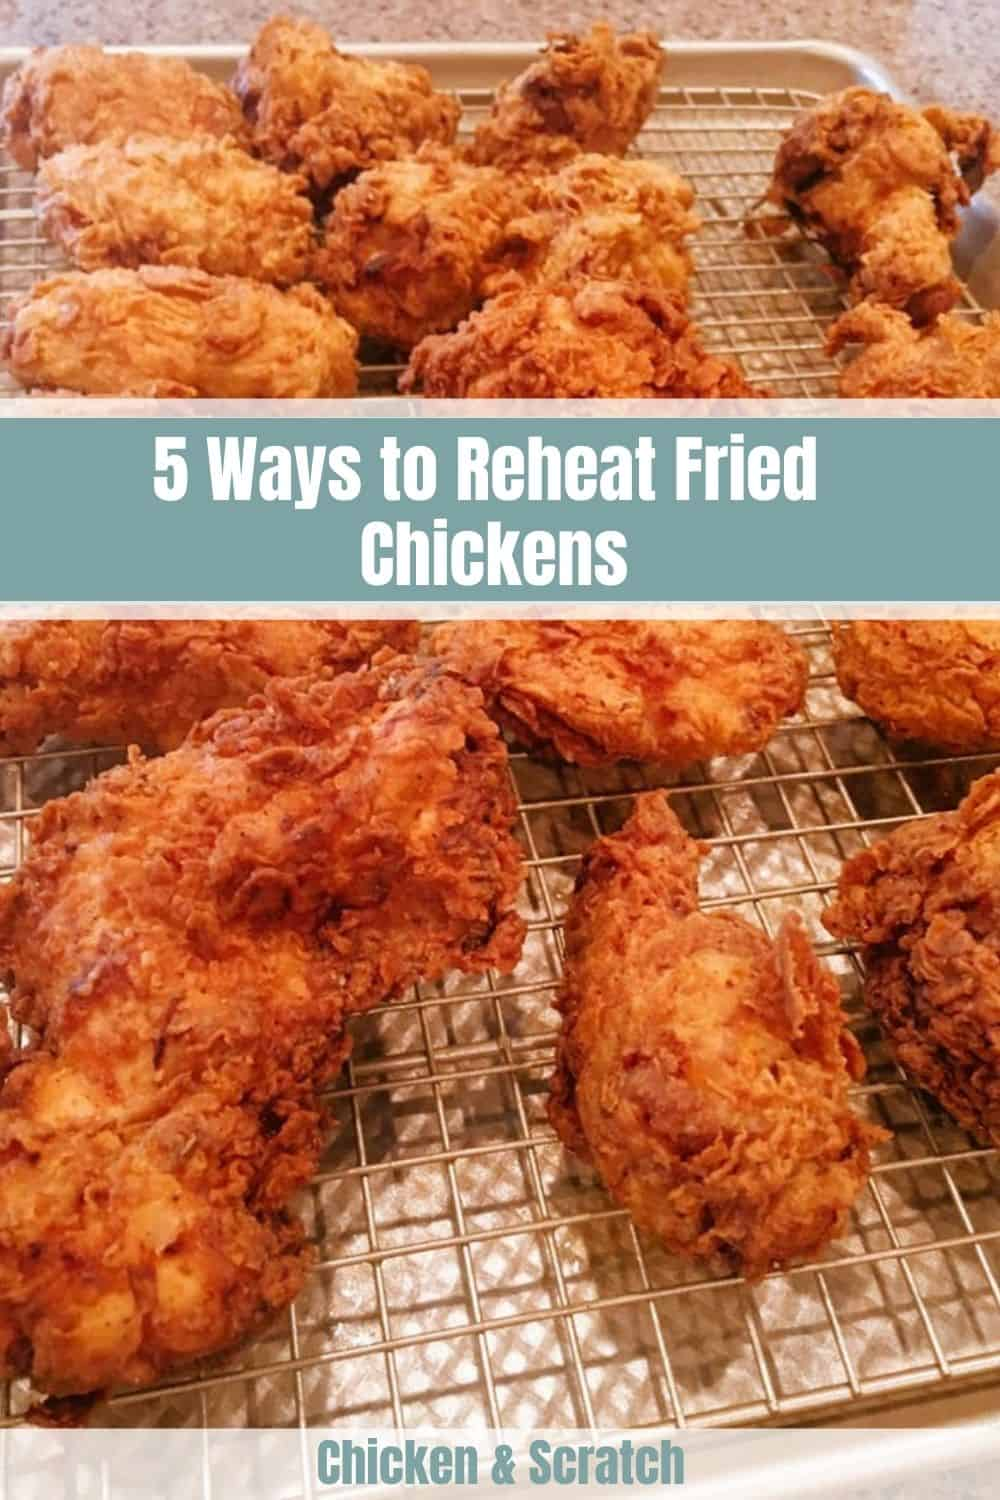 reheating fried chicken in oven